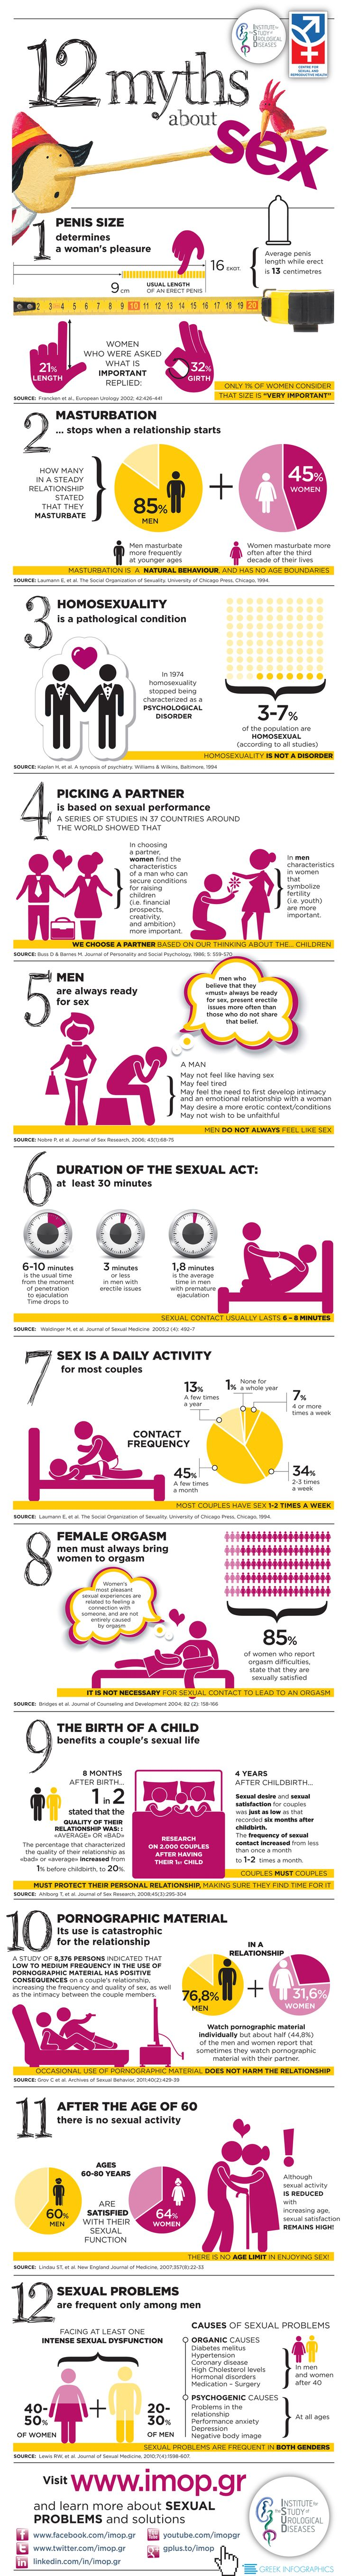 Alright everyone, it's time that we put all of that high school locker room hearsay to rest. Admittedly, I learned quite a lot from this infographic. At first I took it as a reflection of my own naivety before realizing that this infographic was made for a reason. These are common misconceptions that nobody really talks about because we're afraid to admit that our sex lives do not live up to the glorified model of performance that has positioned itself as the norm.